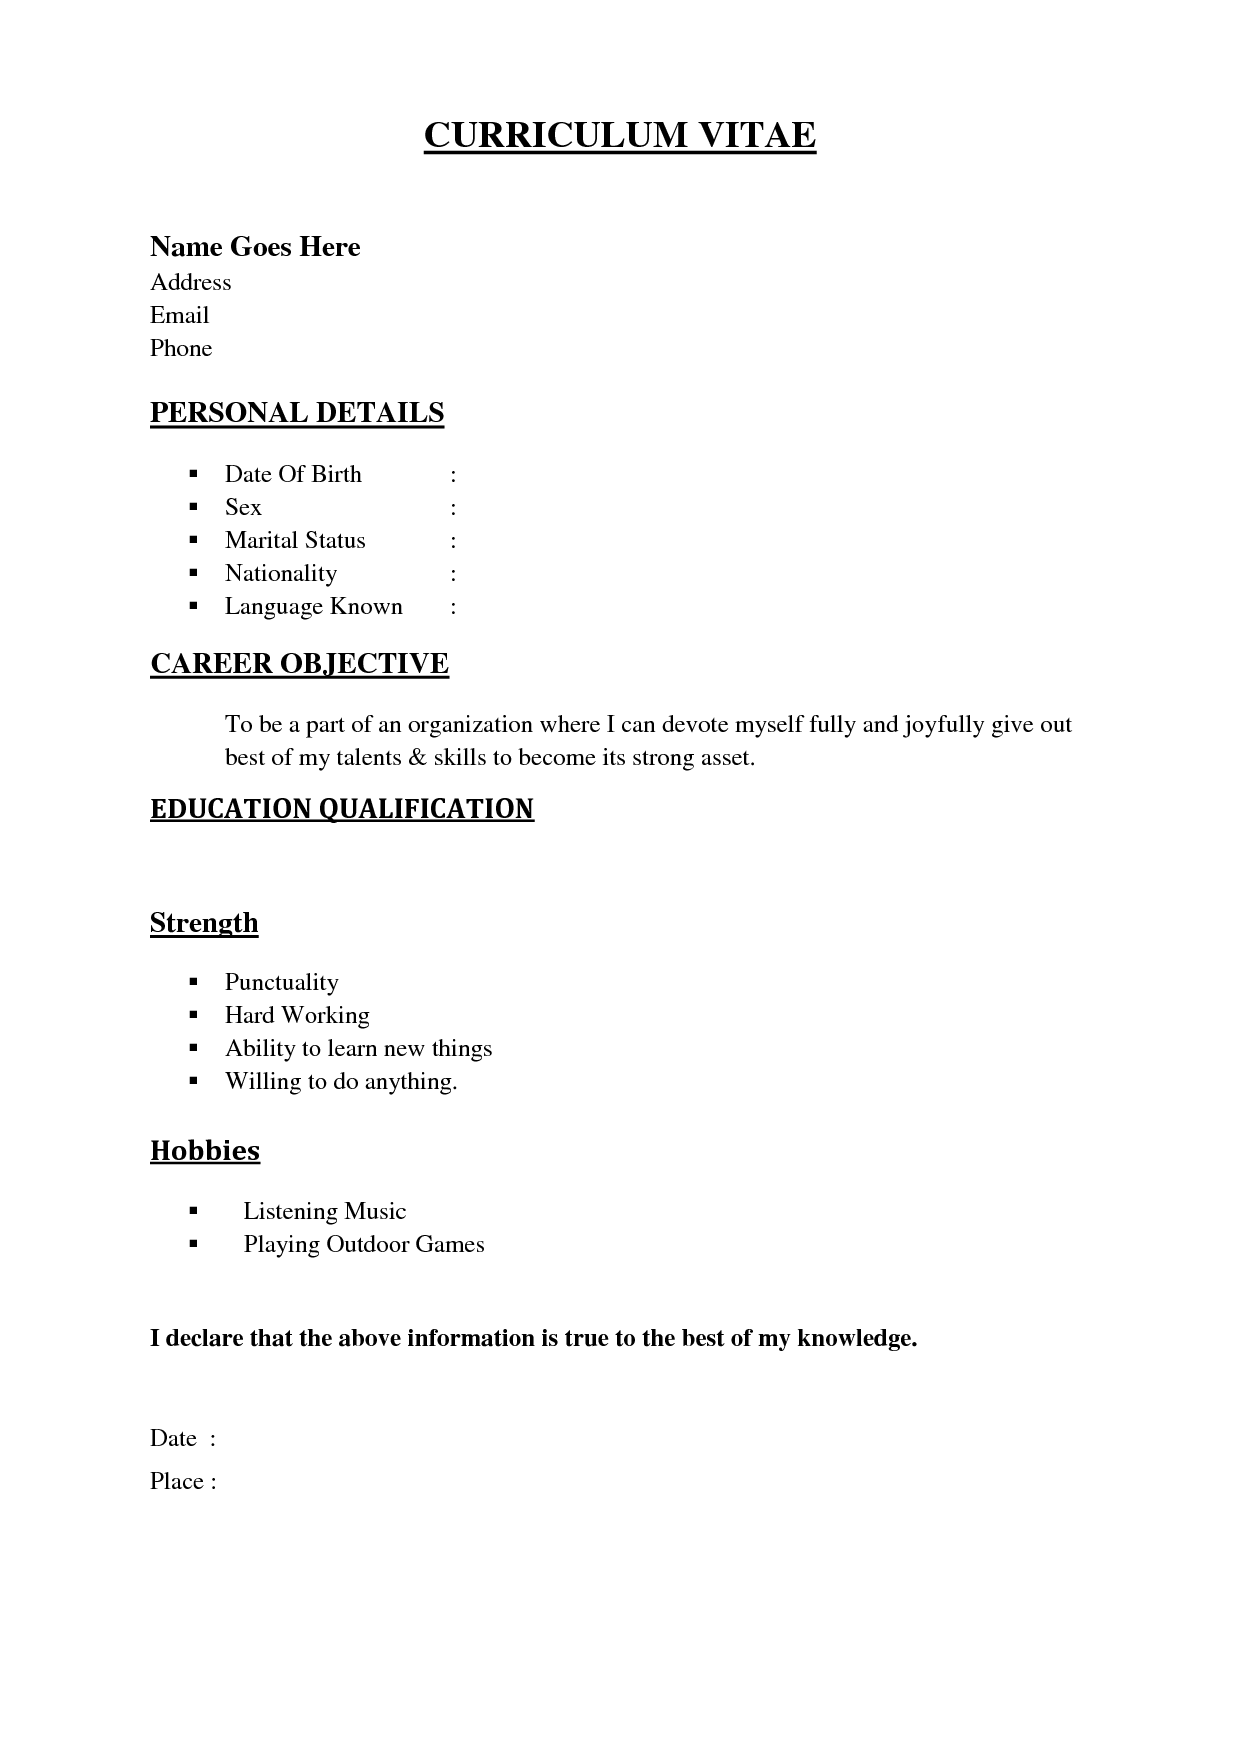 resume   Resume   Simple resume sample  Resume outline  Basic resume